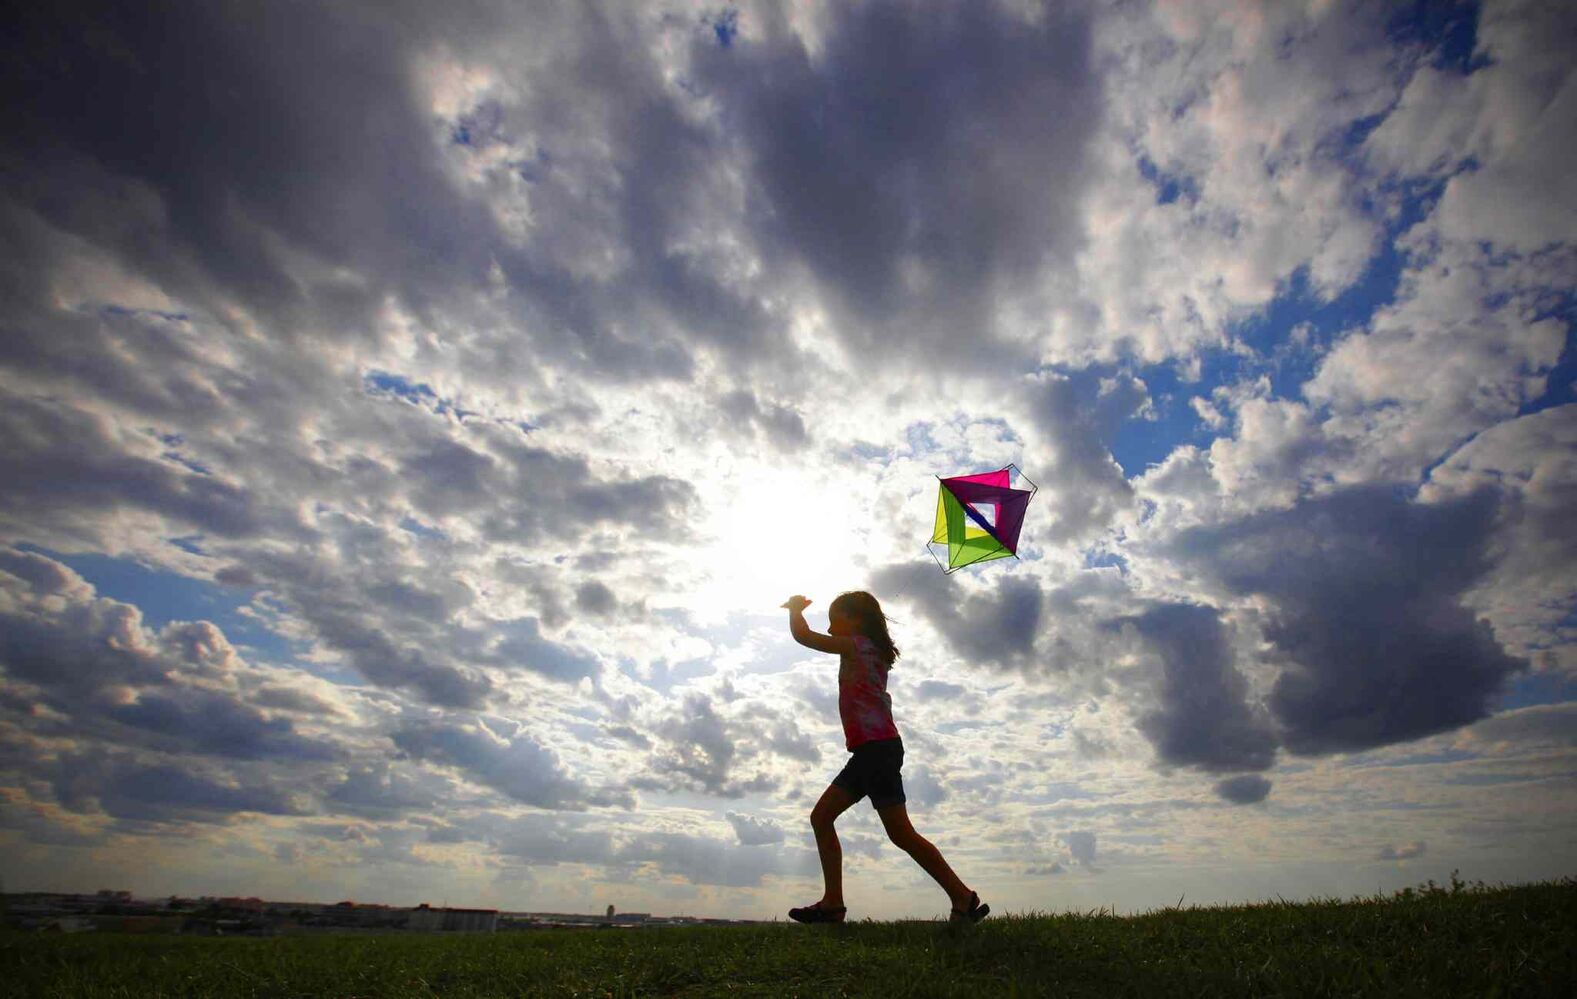 Fiona Nixon (8) was out flying her kite with her mom and sister at Westview Park (Garbage Hill) Tuesday, June 18, 2013.